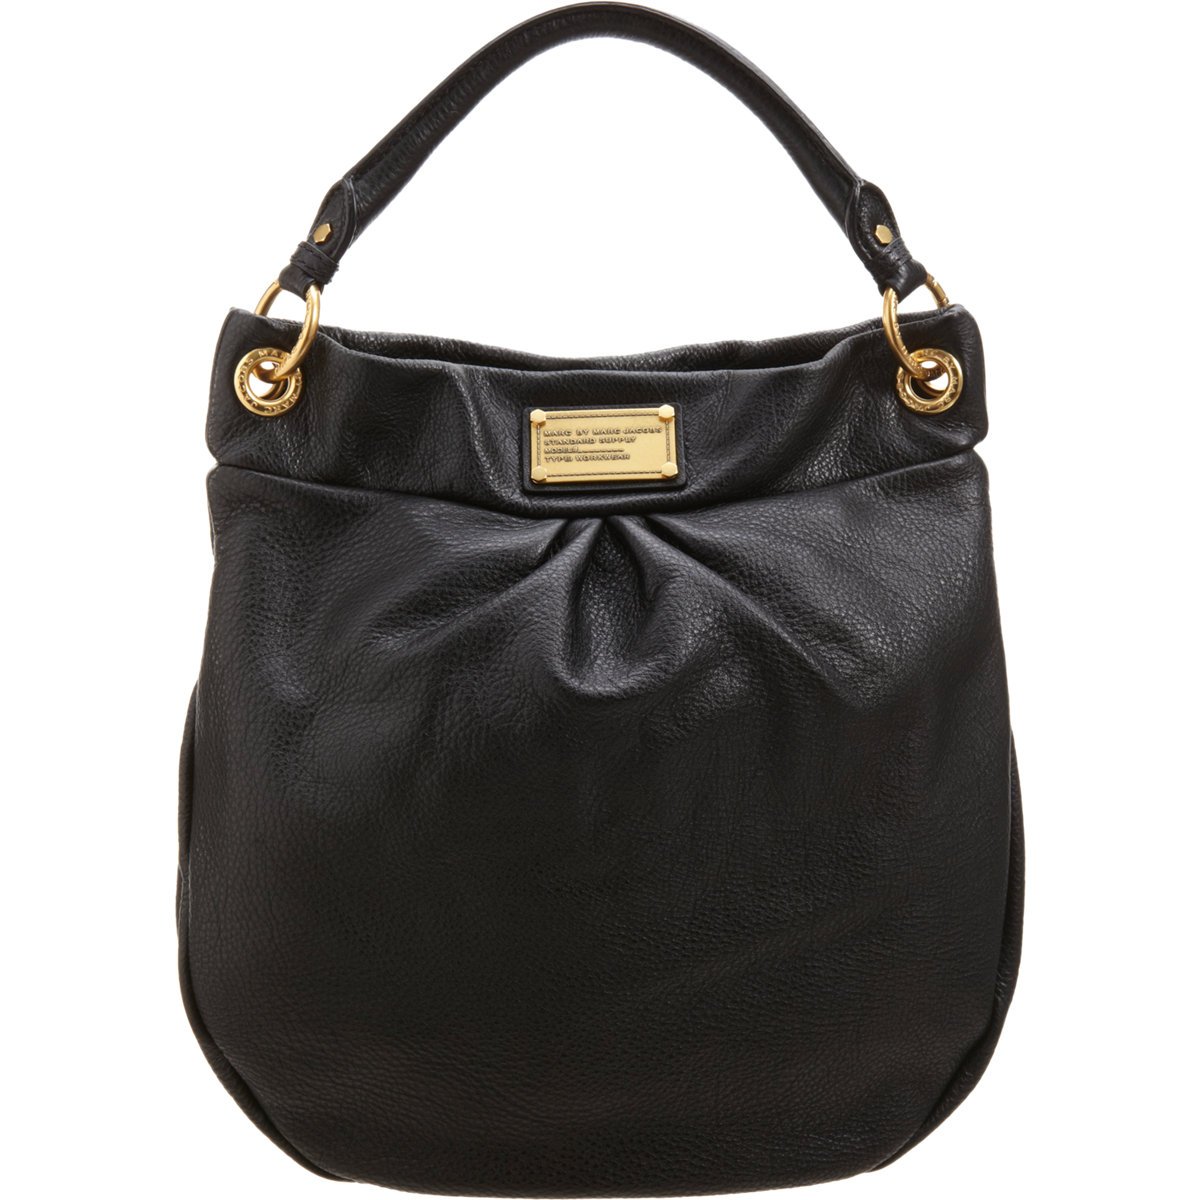 marc by marc jacobs classic q hillier hobo bag in black oyster lyst. Black Bedroom Furniture Sets. Home Design Ideas